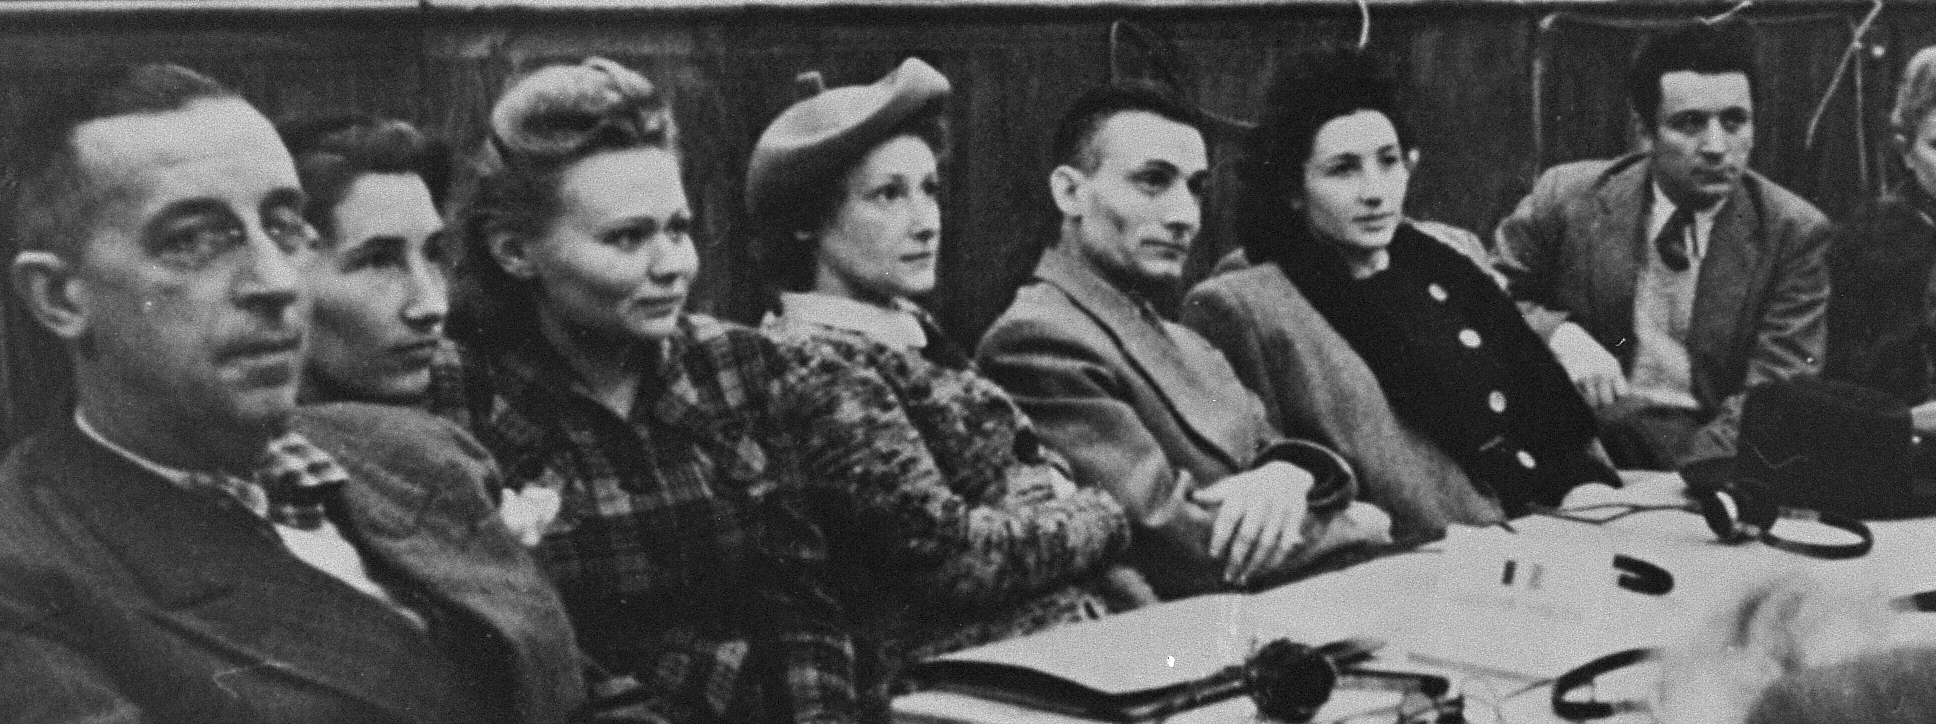 Witnesses for the Prosecution at the Krakow Auschwitz Trial